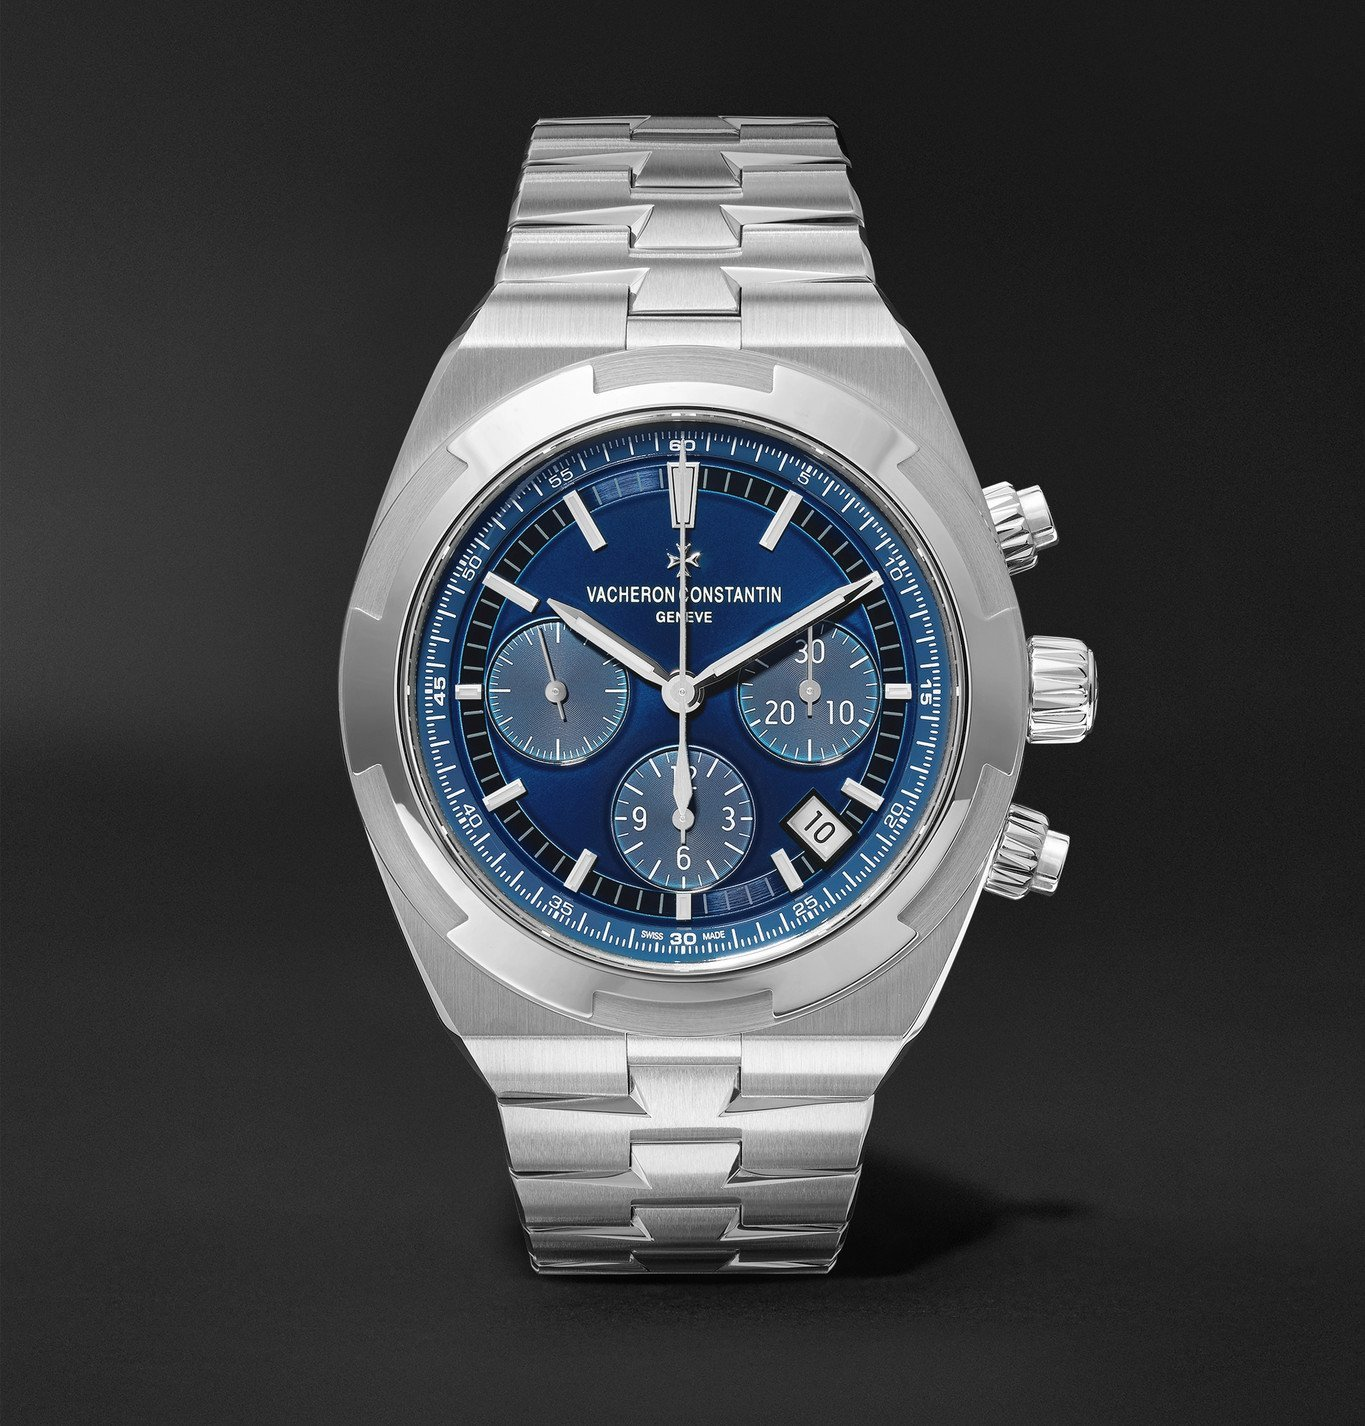 Photo: Vacheron Constantin - Overseas Automatic Chronograph 42.5mm Stainless Steel Watch, Ref. No. 5500V/110A-B148 - Unknown